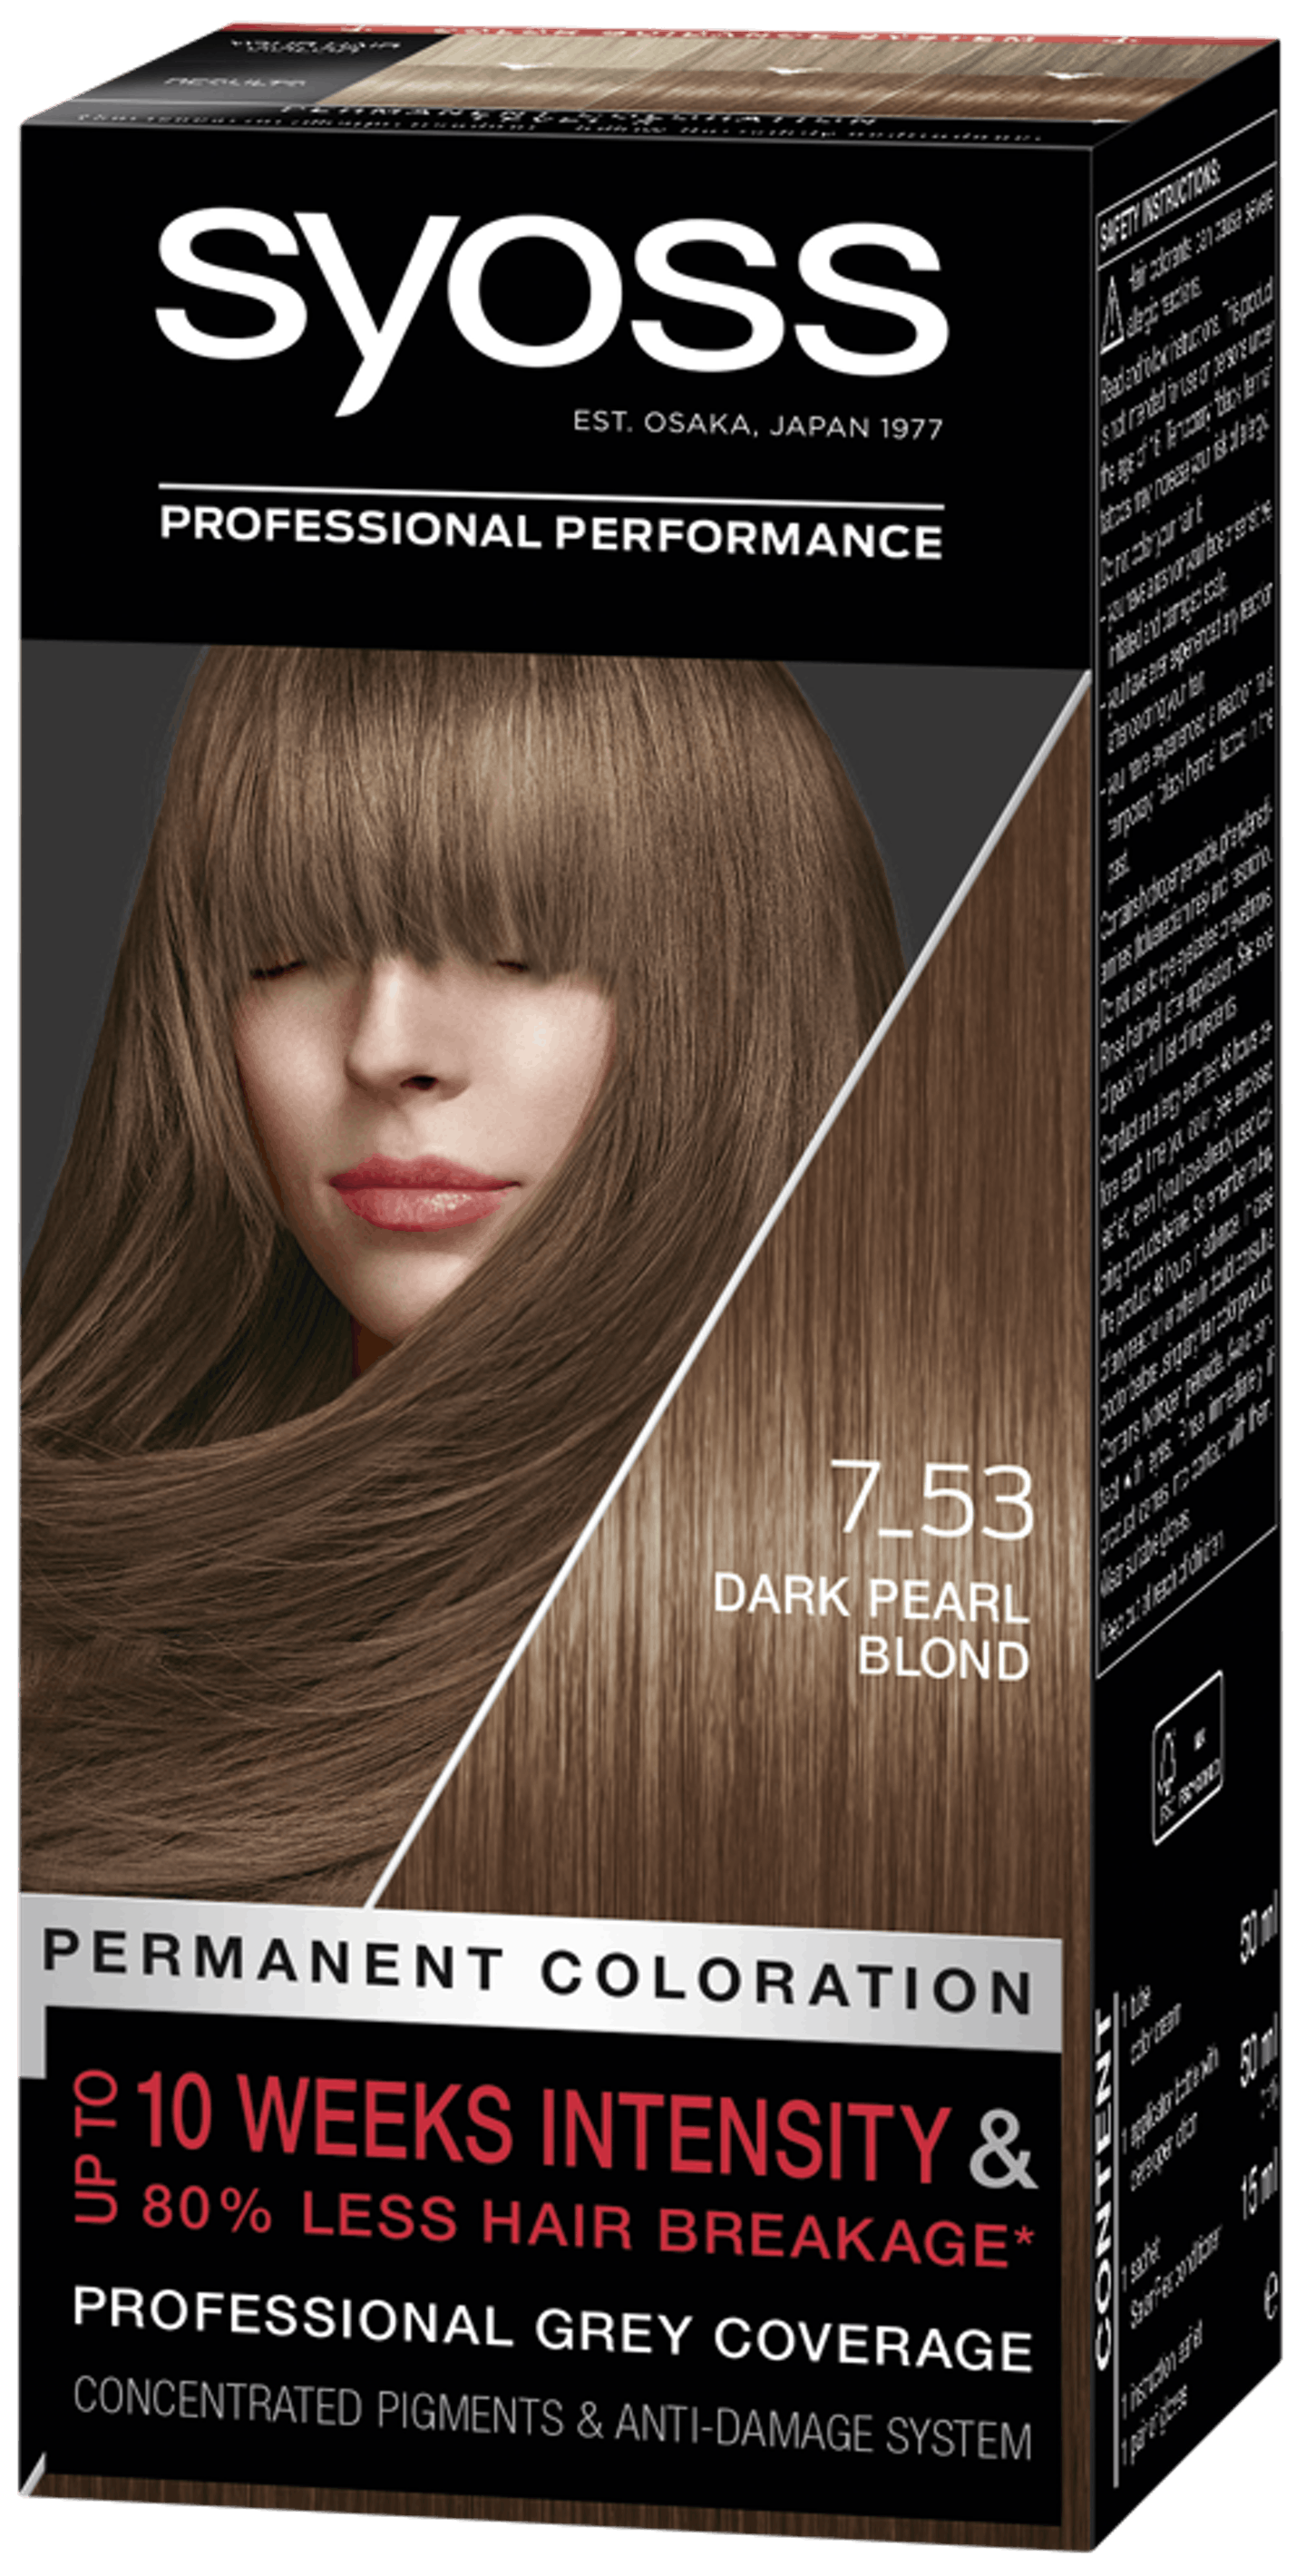 Syoss Permanent Coloration 7_53 Dark Pearl Blond